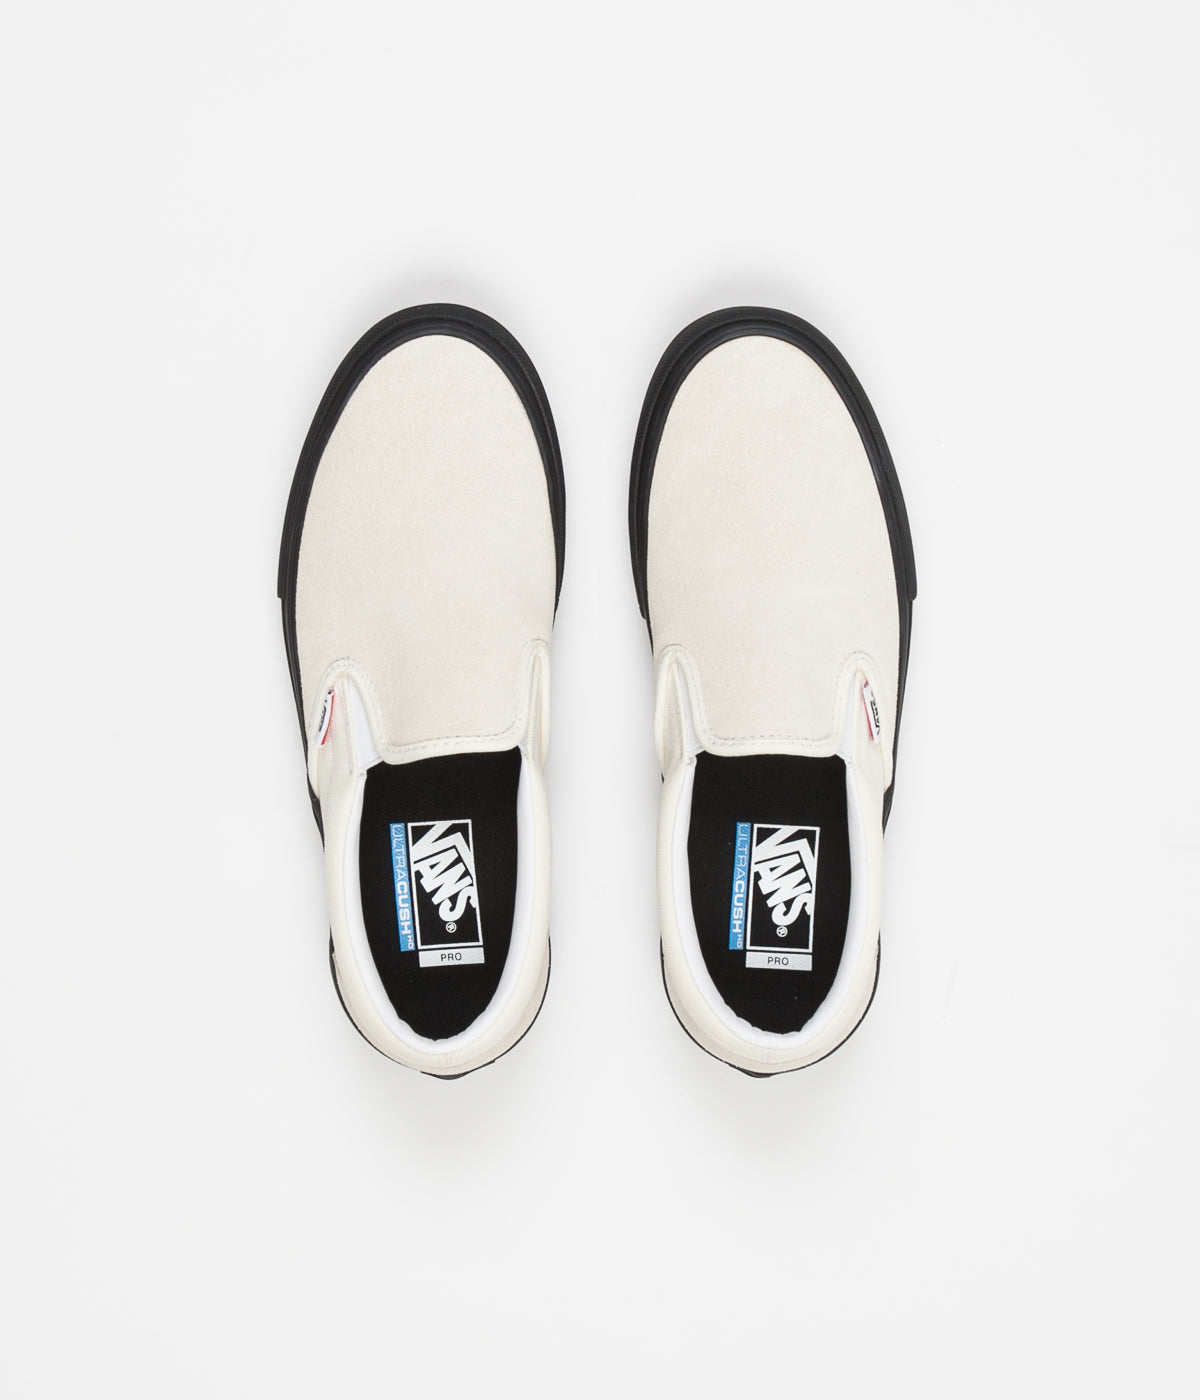 9963a24f2570 Vans Slip On Pro Shoes - Classic White   Black ...